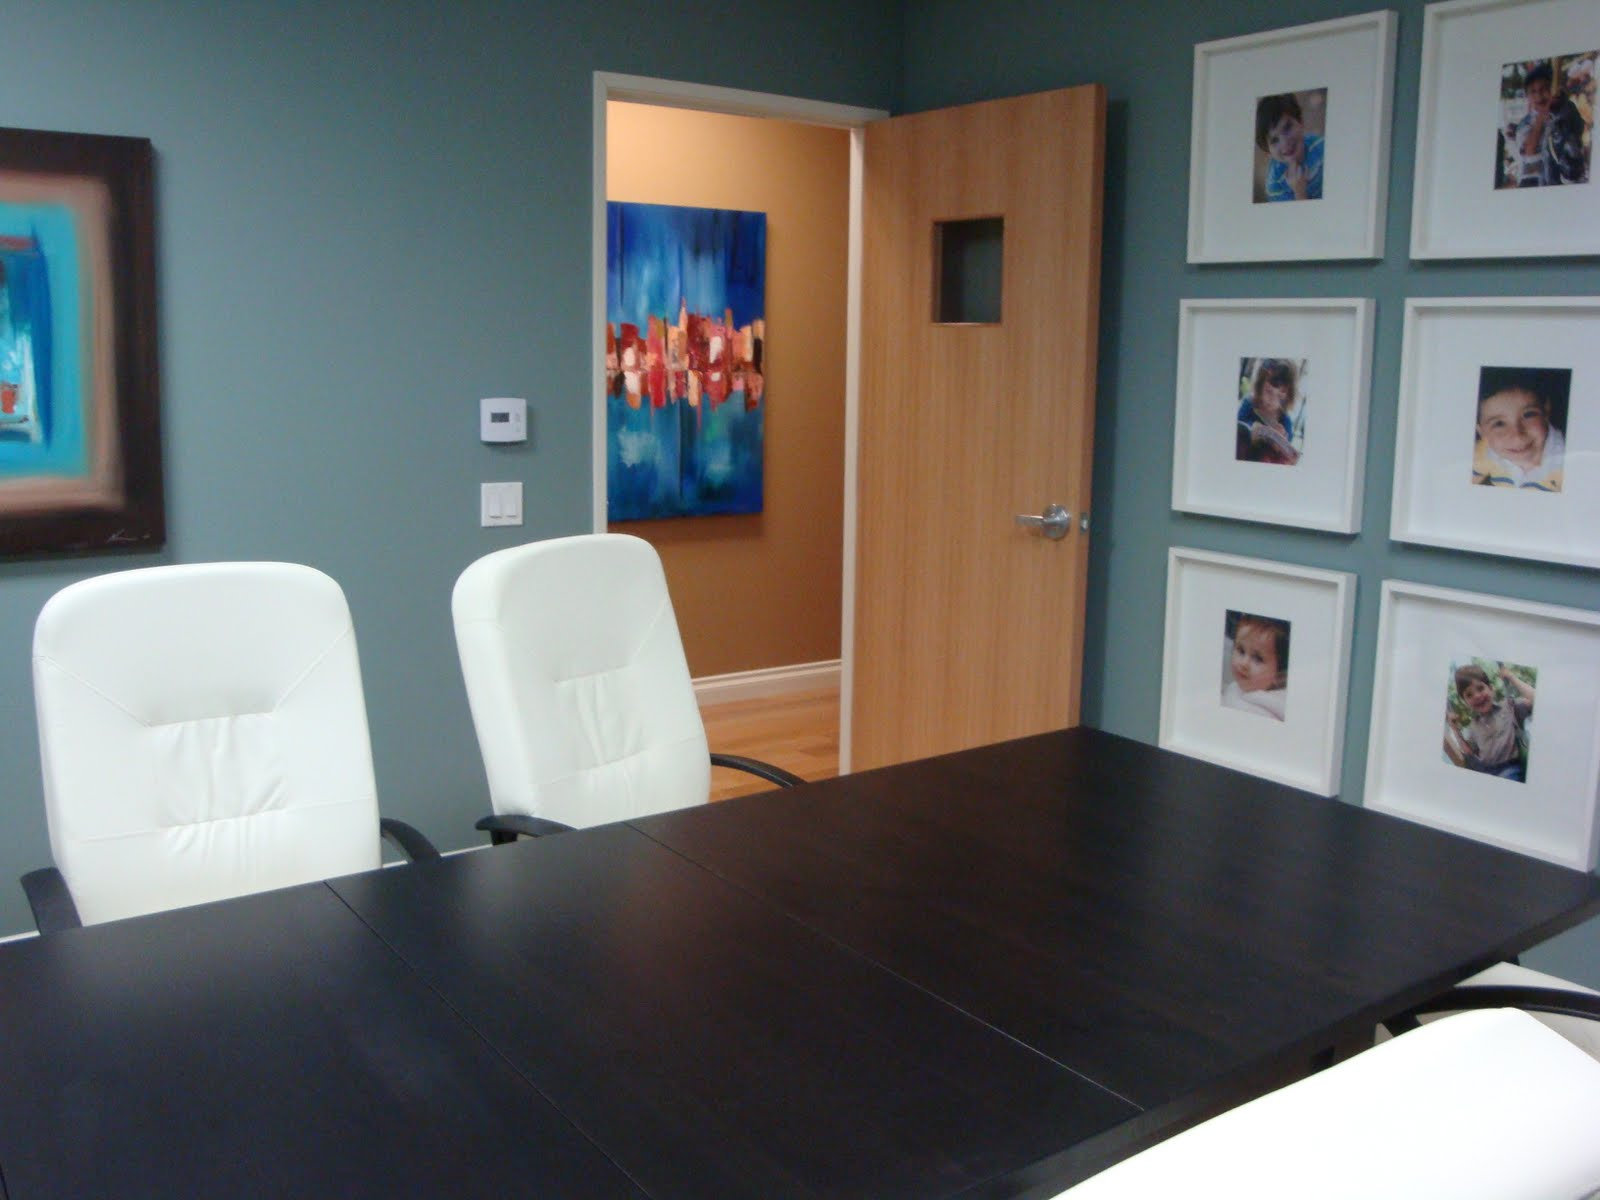 Best paint colors for preschool classrooms - There Will Be A Flat Screen Tv Mounted On The Wall Opposite The Photograph Wall The Photographs Will Eventually Be The Children From The Clinic They Have